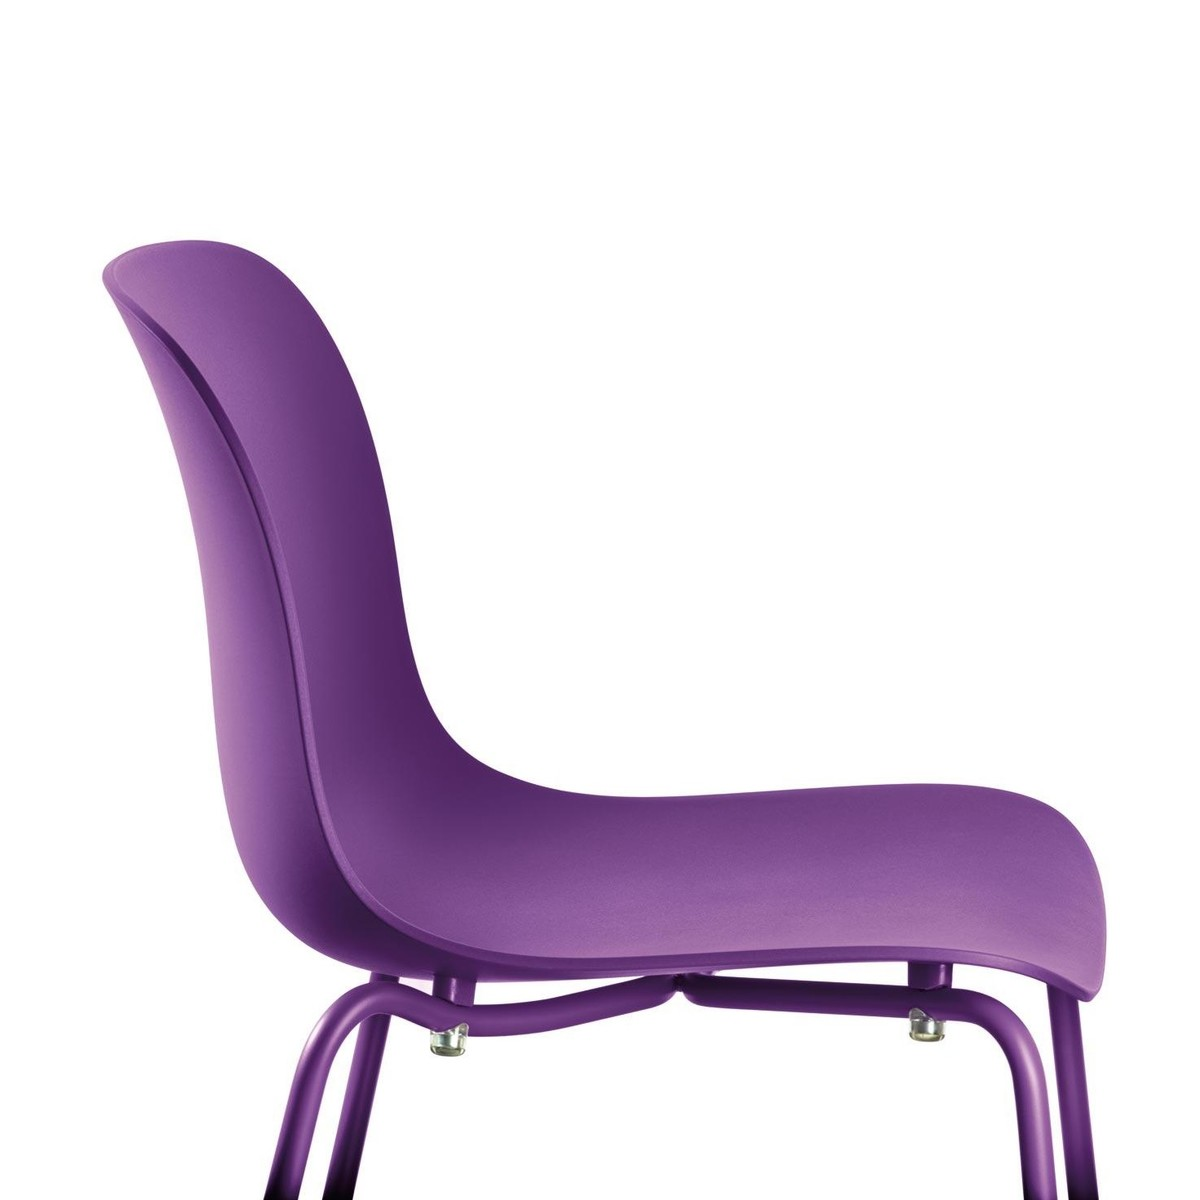 Magis troy chair outdoor set of 4 magis for Marcel wanders stuhl